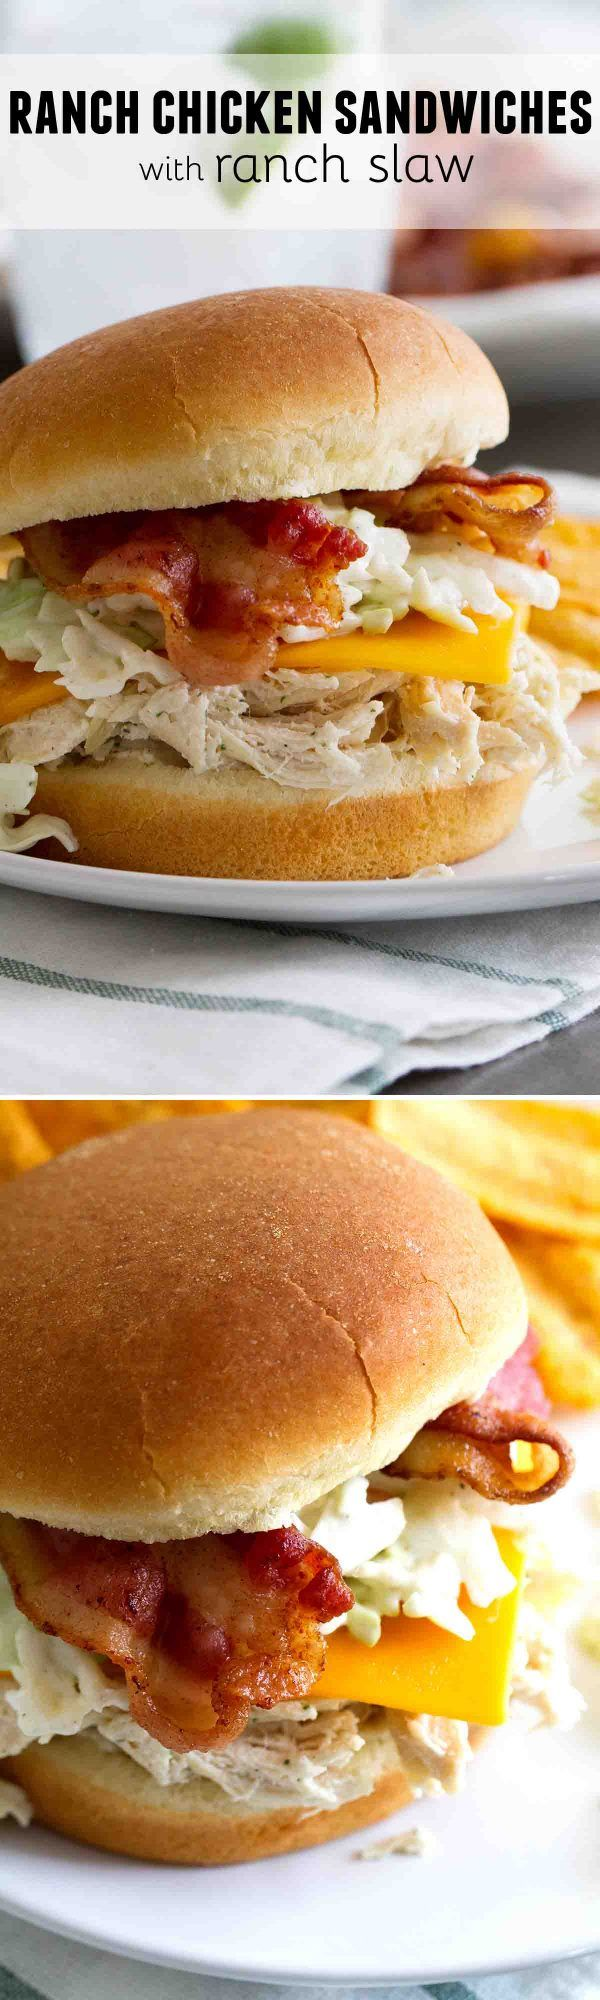 Filled with lots of ranch flavor, these Ranch Chicken Sandwiches with Ranch Slaw make dinner or lunchtime easy and crave-able!